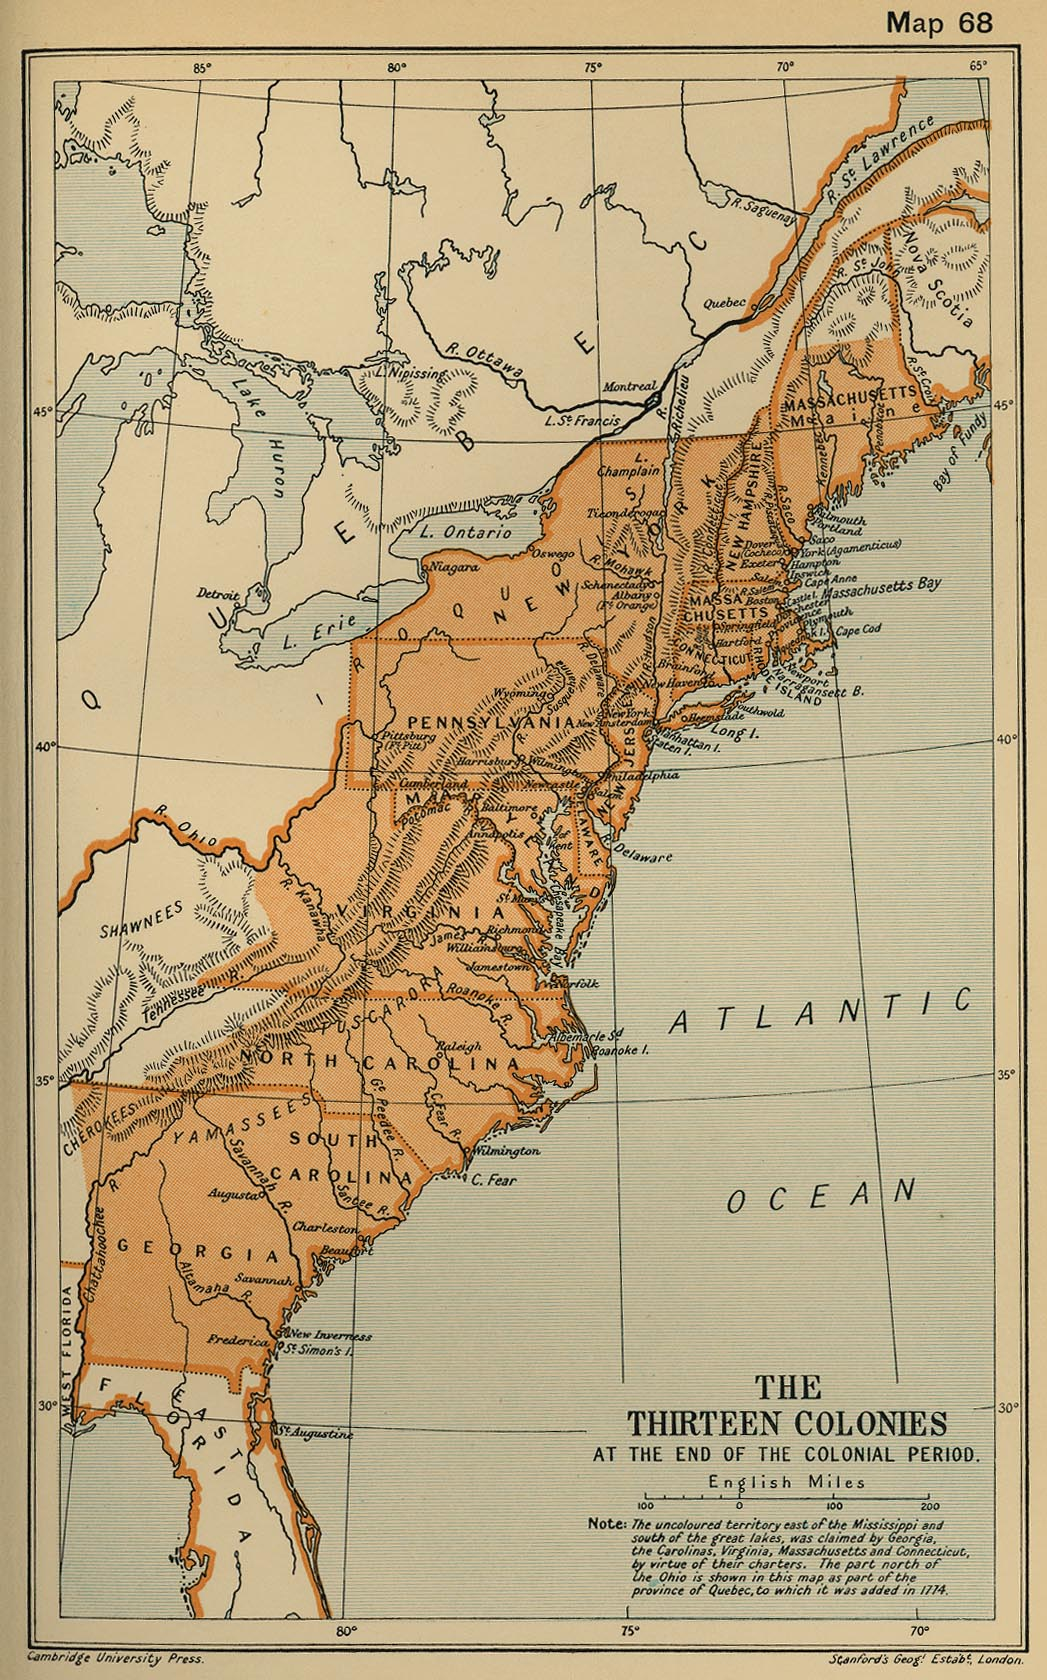 the thirteen colonies at the end of the colonial period 409k map